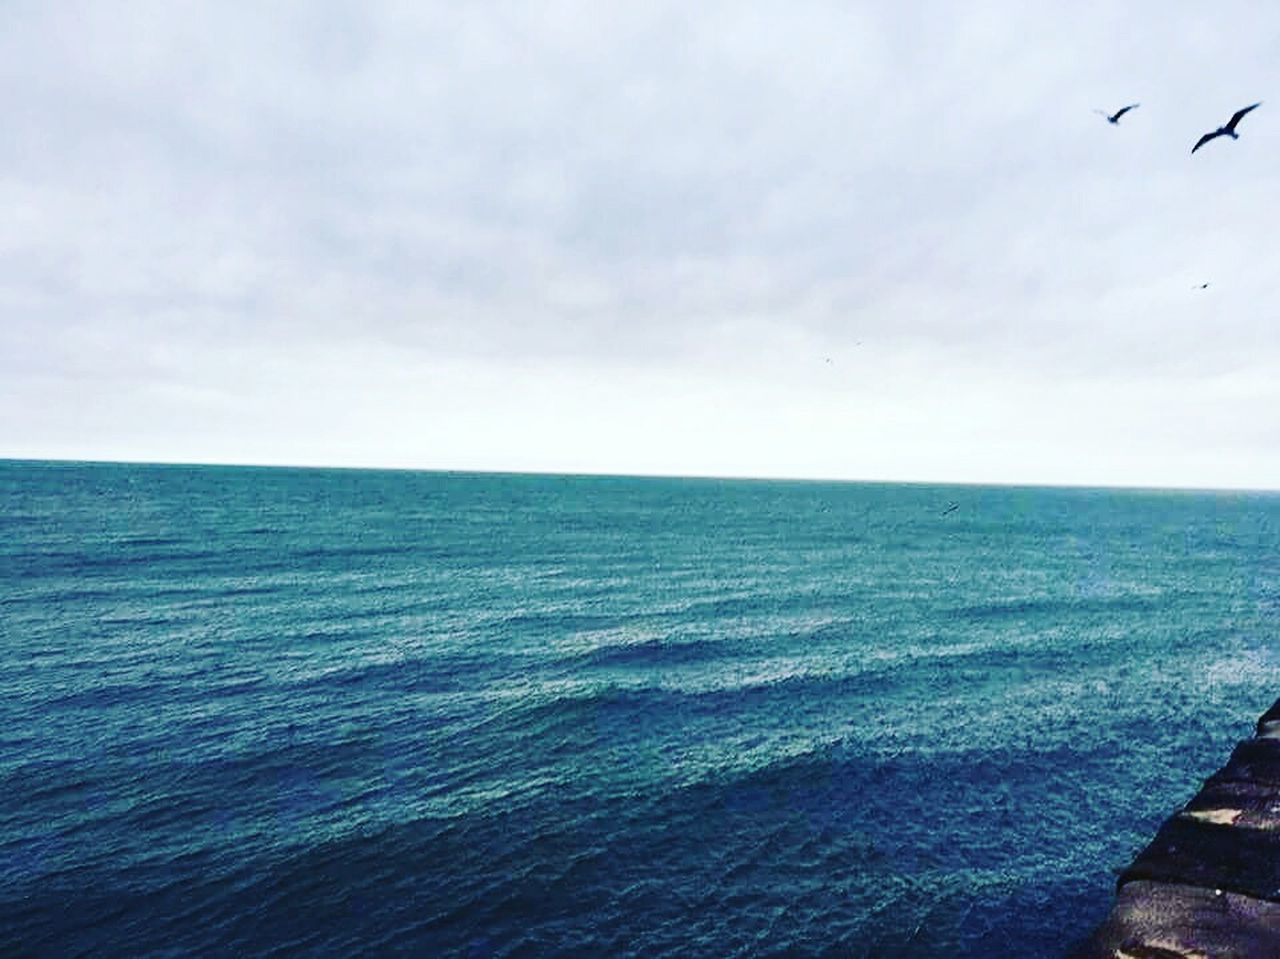 sea, horizon over water, water, tranquil scene, scenics, sky, nature, beauty in nature, flying, idyllic, tranquility, cloud - sky, outdoors, no people, bird, day, horizon, animal themes